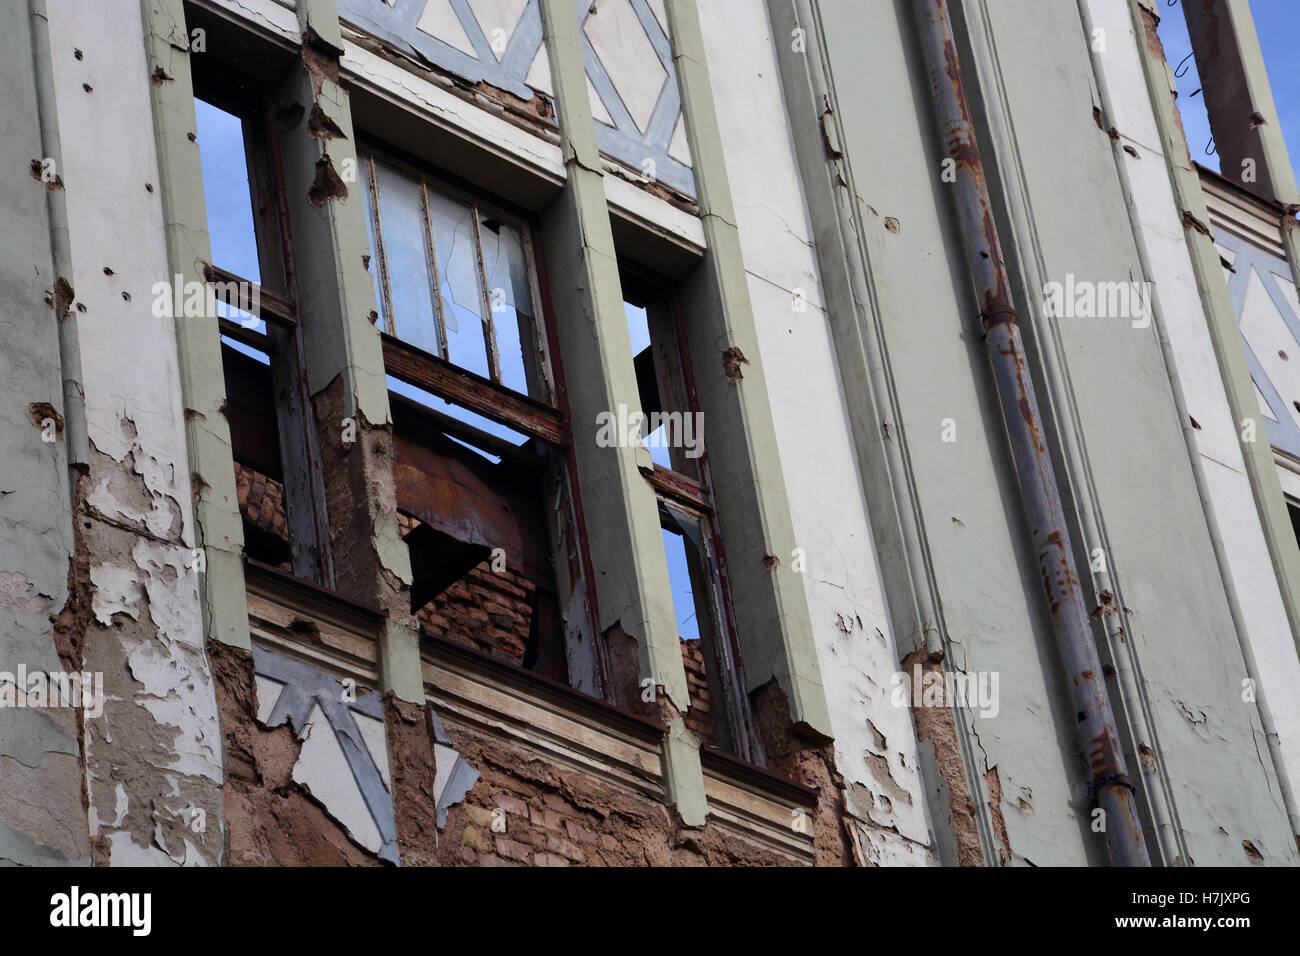 An apartment building in Sarajevo's Old Town remains damaged from the 1992-96 Serbian siege of the city. Stock Photo